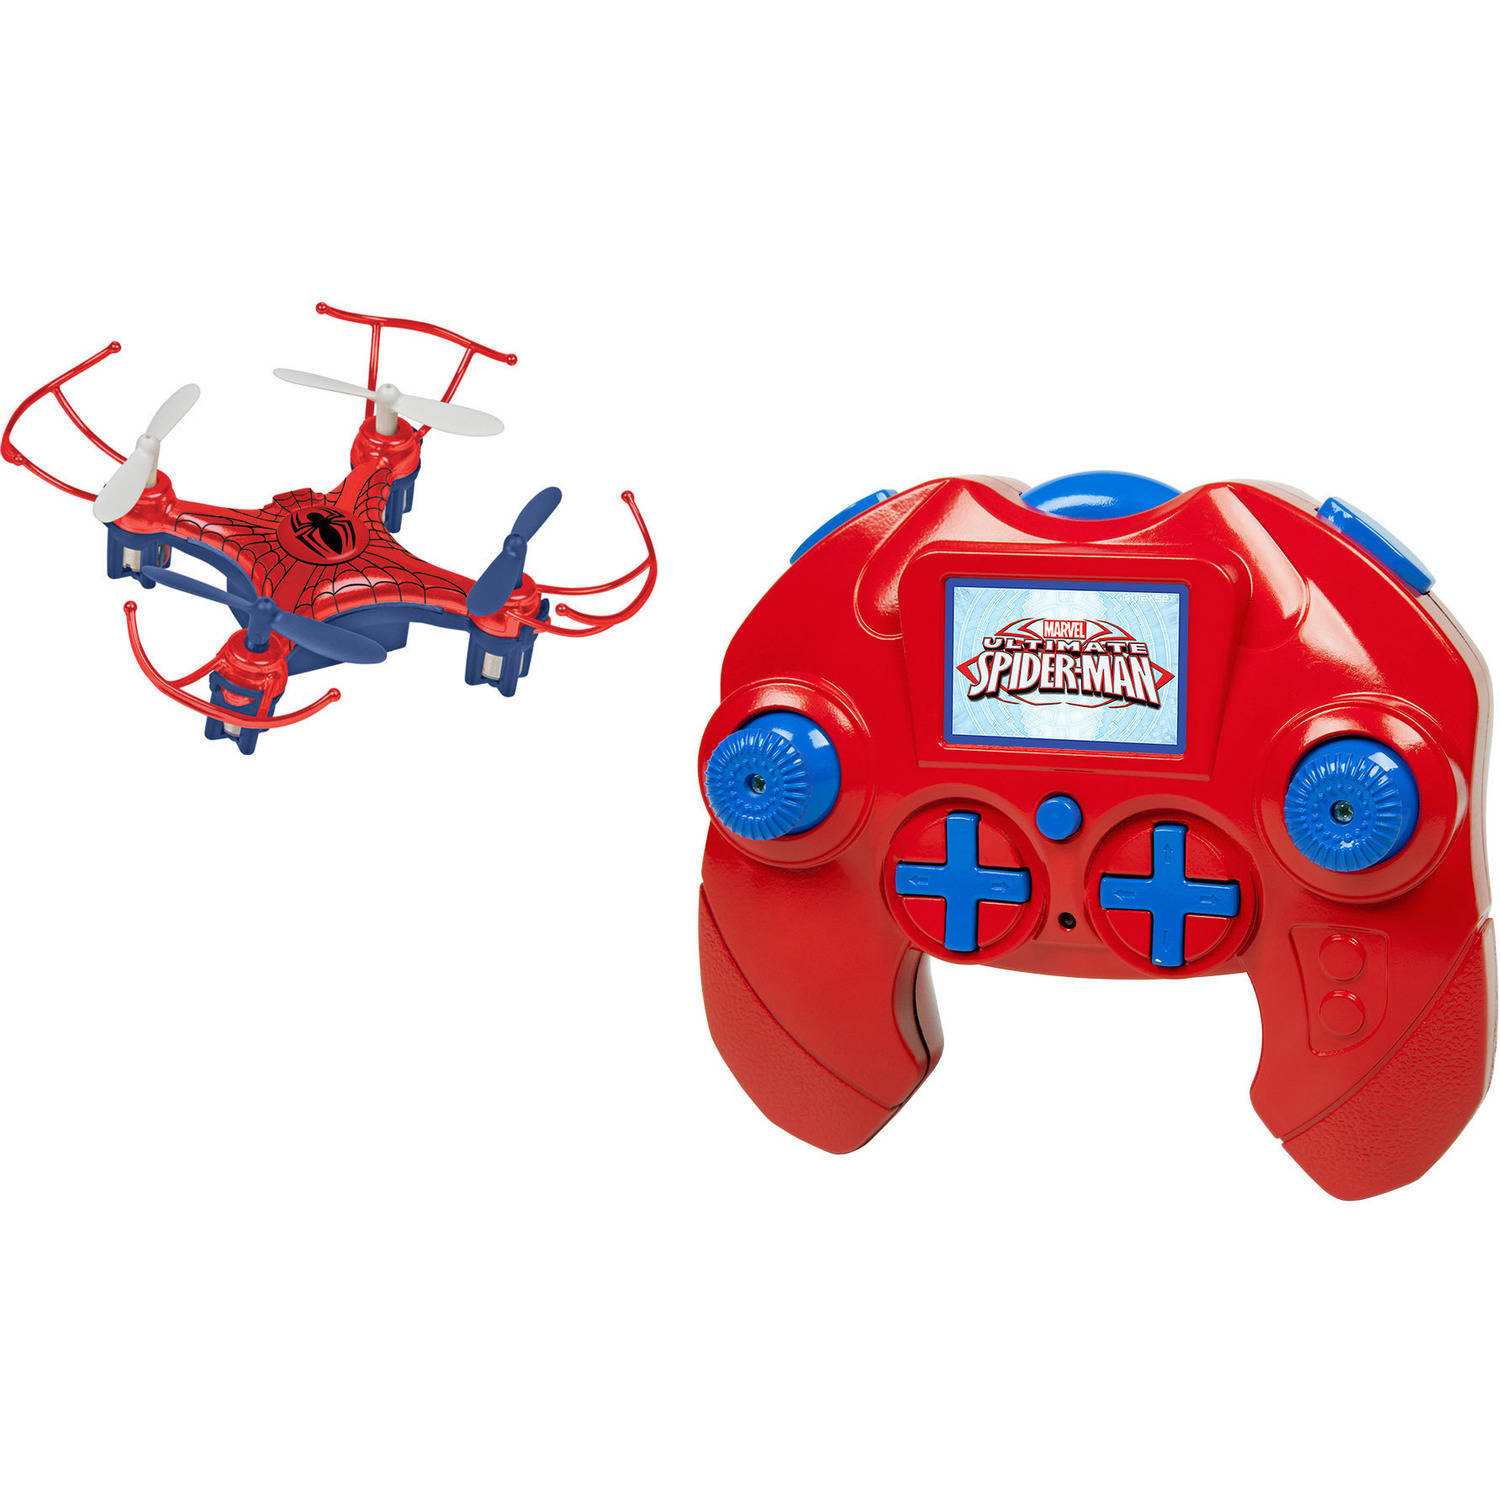 Marvel Avengers Spider-Man Micro Drone 4.5-Channel 2.4GHz RC Quadcopter by MARVEL